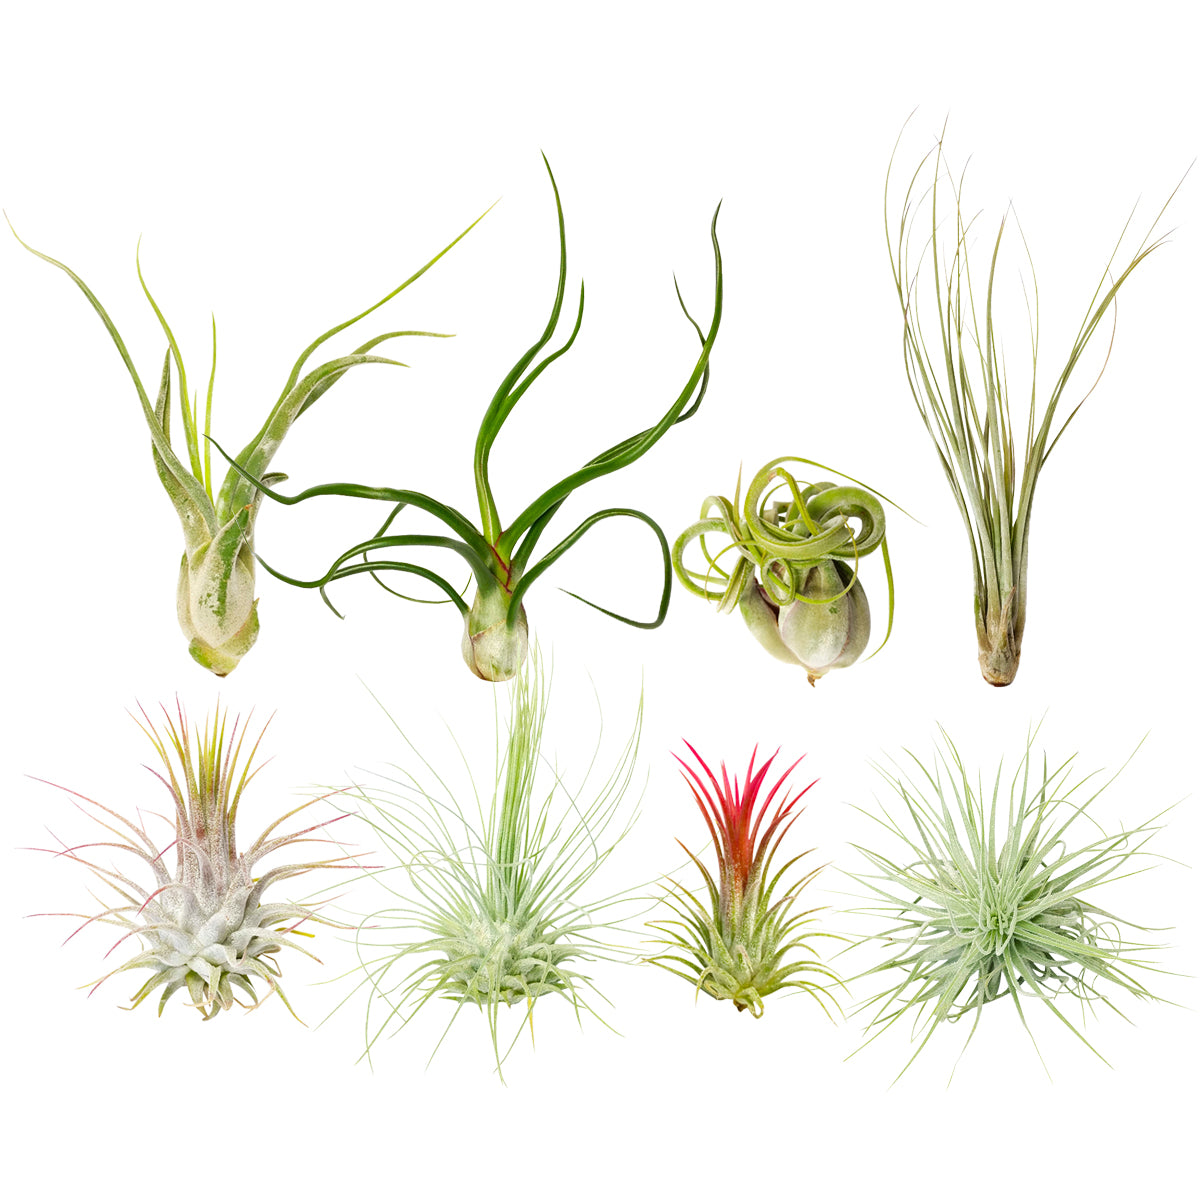 Assorted Collection of Live Air Plants Randomly Picked, Set of Live Air Plants, Air Plants Gift Box, Air Plants Gift Ideas, Air Plants Decoration, Rare Air Plants for Sale